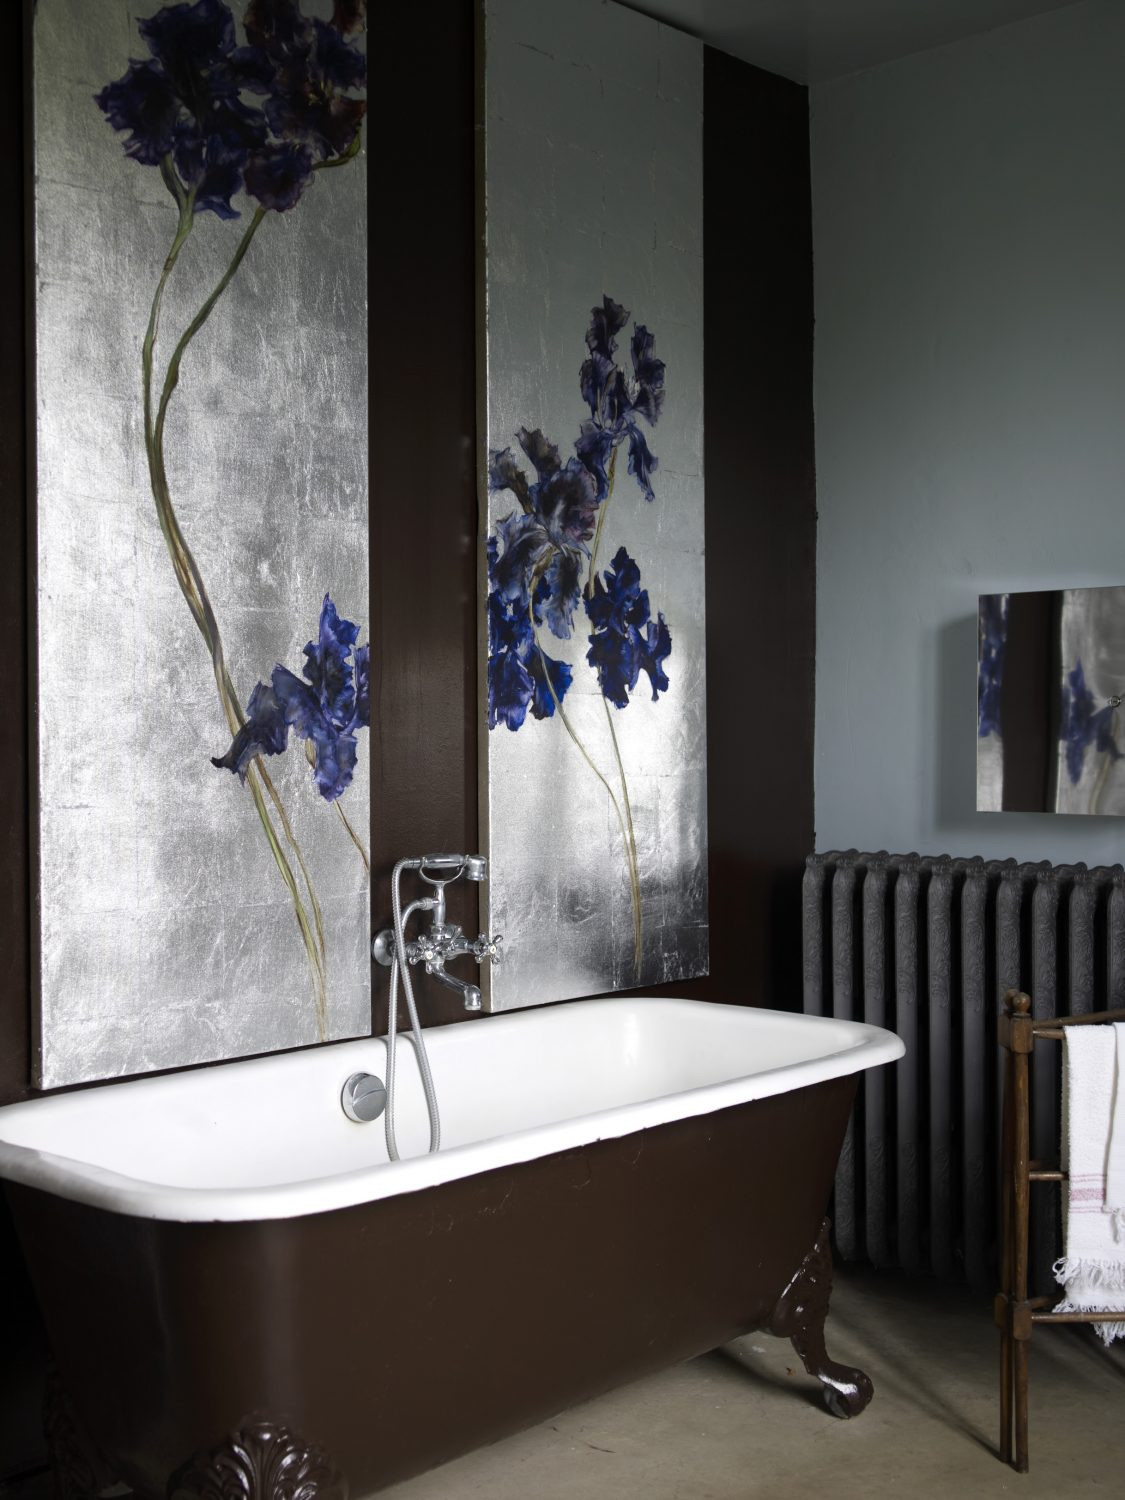 Old World Comforts: In Claire Basler's bathroom, she has a generously sized vintage claw foot bathtub. Her trademark giant floral paintings, in this case irises on a silver canvas, provide a beautiful backdrop to bathe by. Linen towels hang from an old towel rail, heated by a shapely antique radiator.